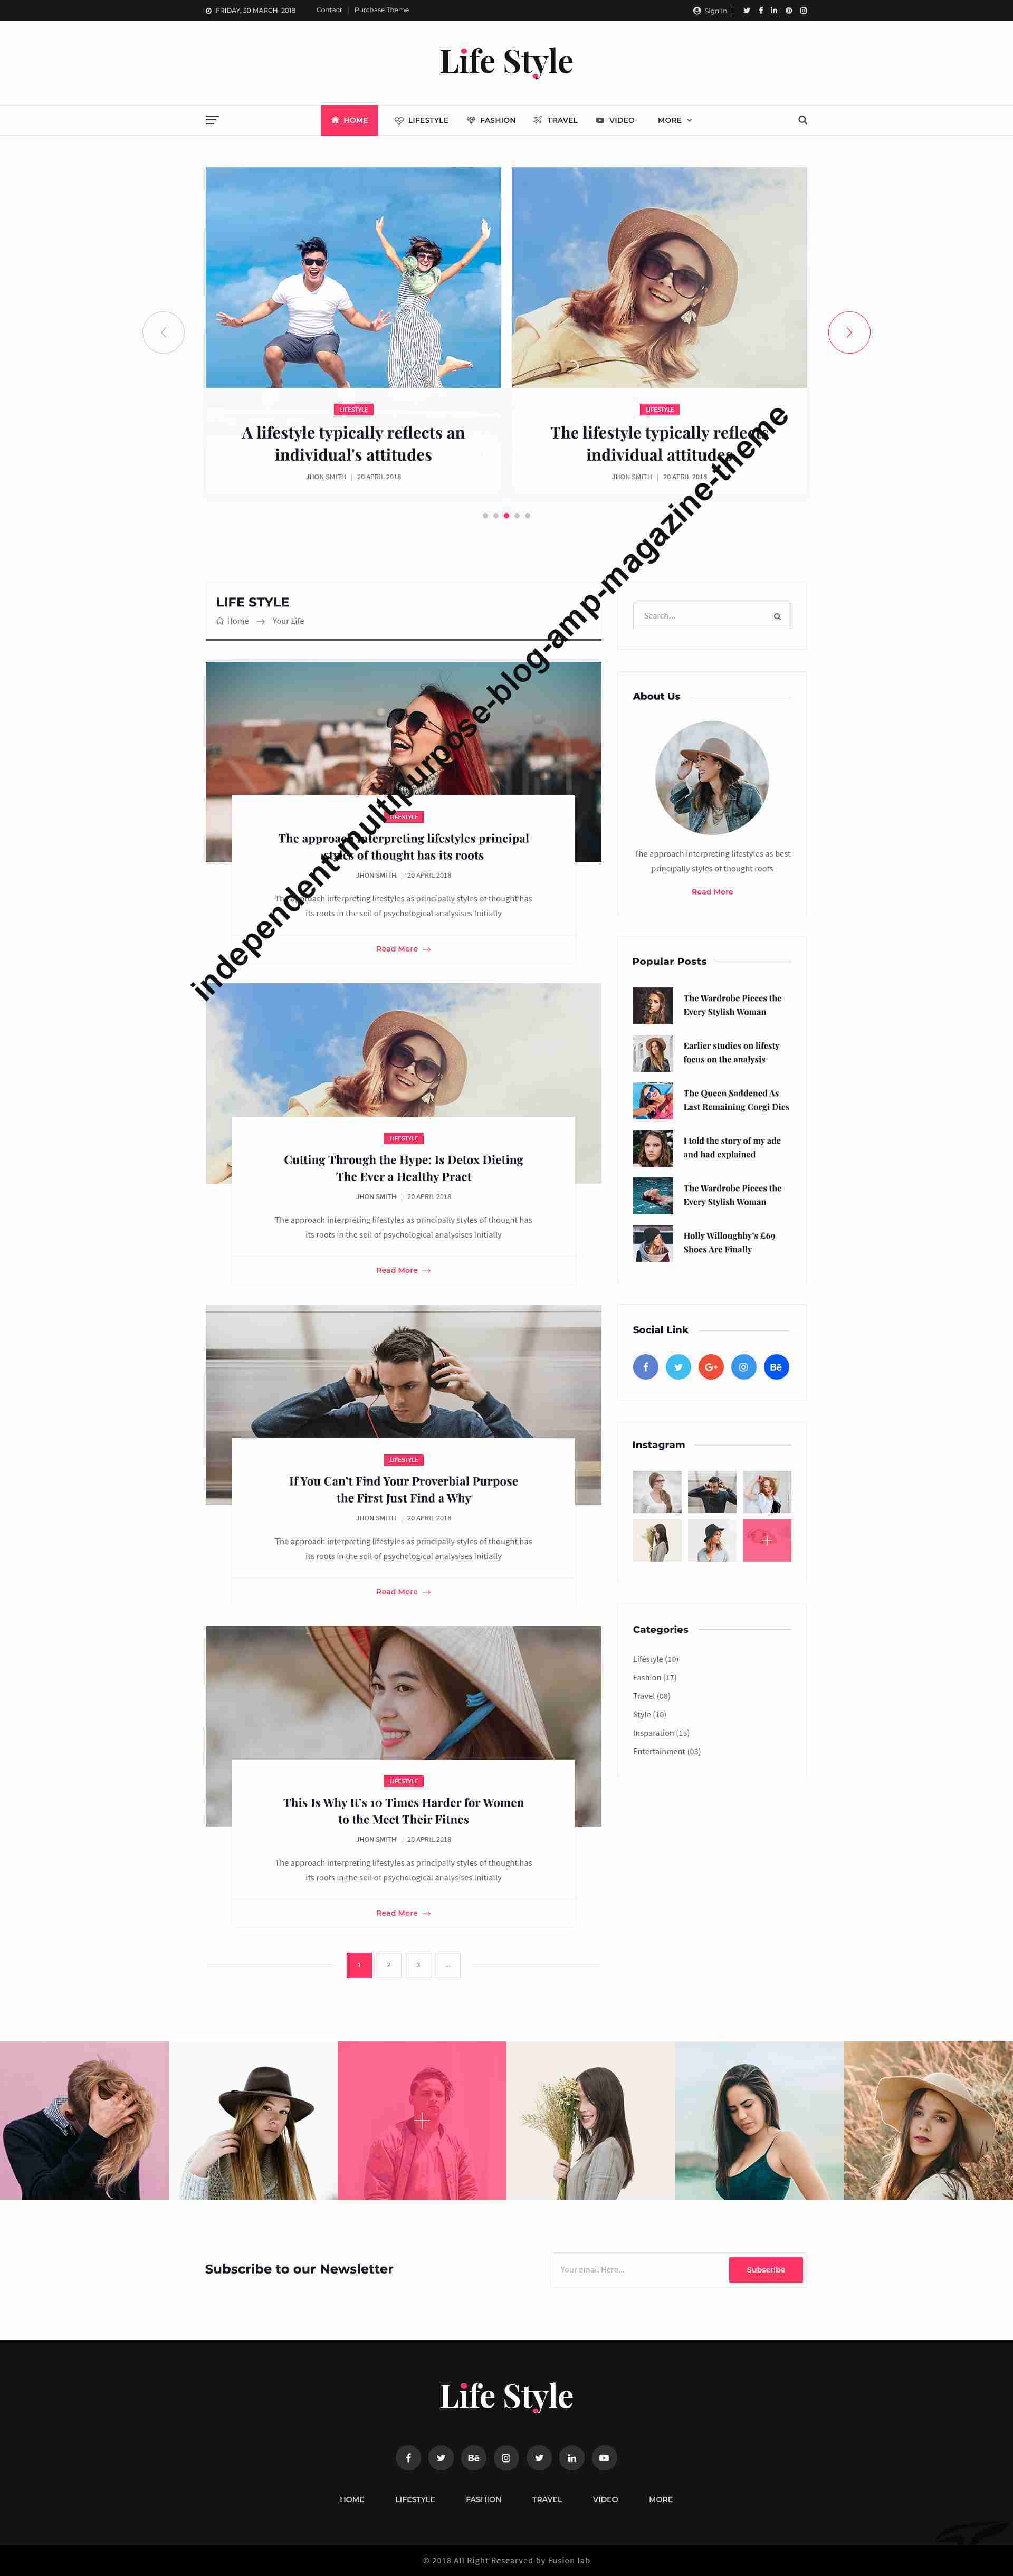 https://images.besthemes.com/images/h1_independent-multipurpose-blog-amp-magazine-theme38-_-249989416/Theme-s20s-Preview/37-Listing-s20s-Blog.jpg